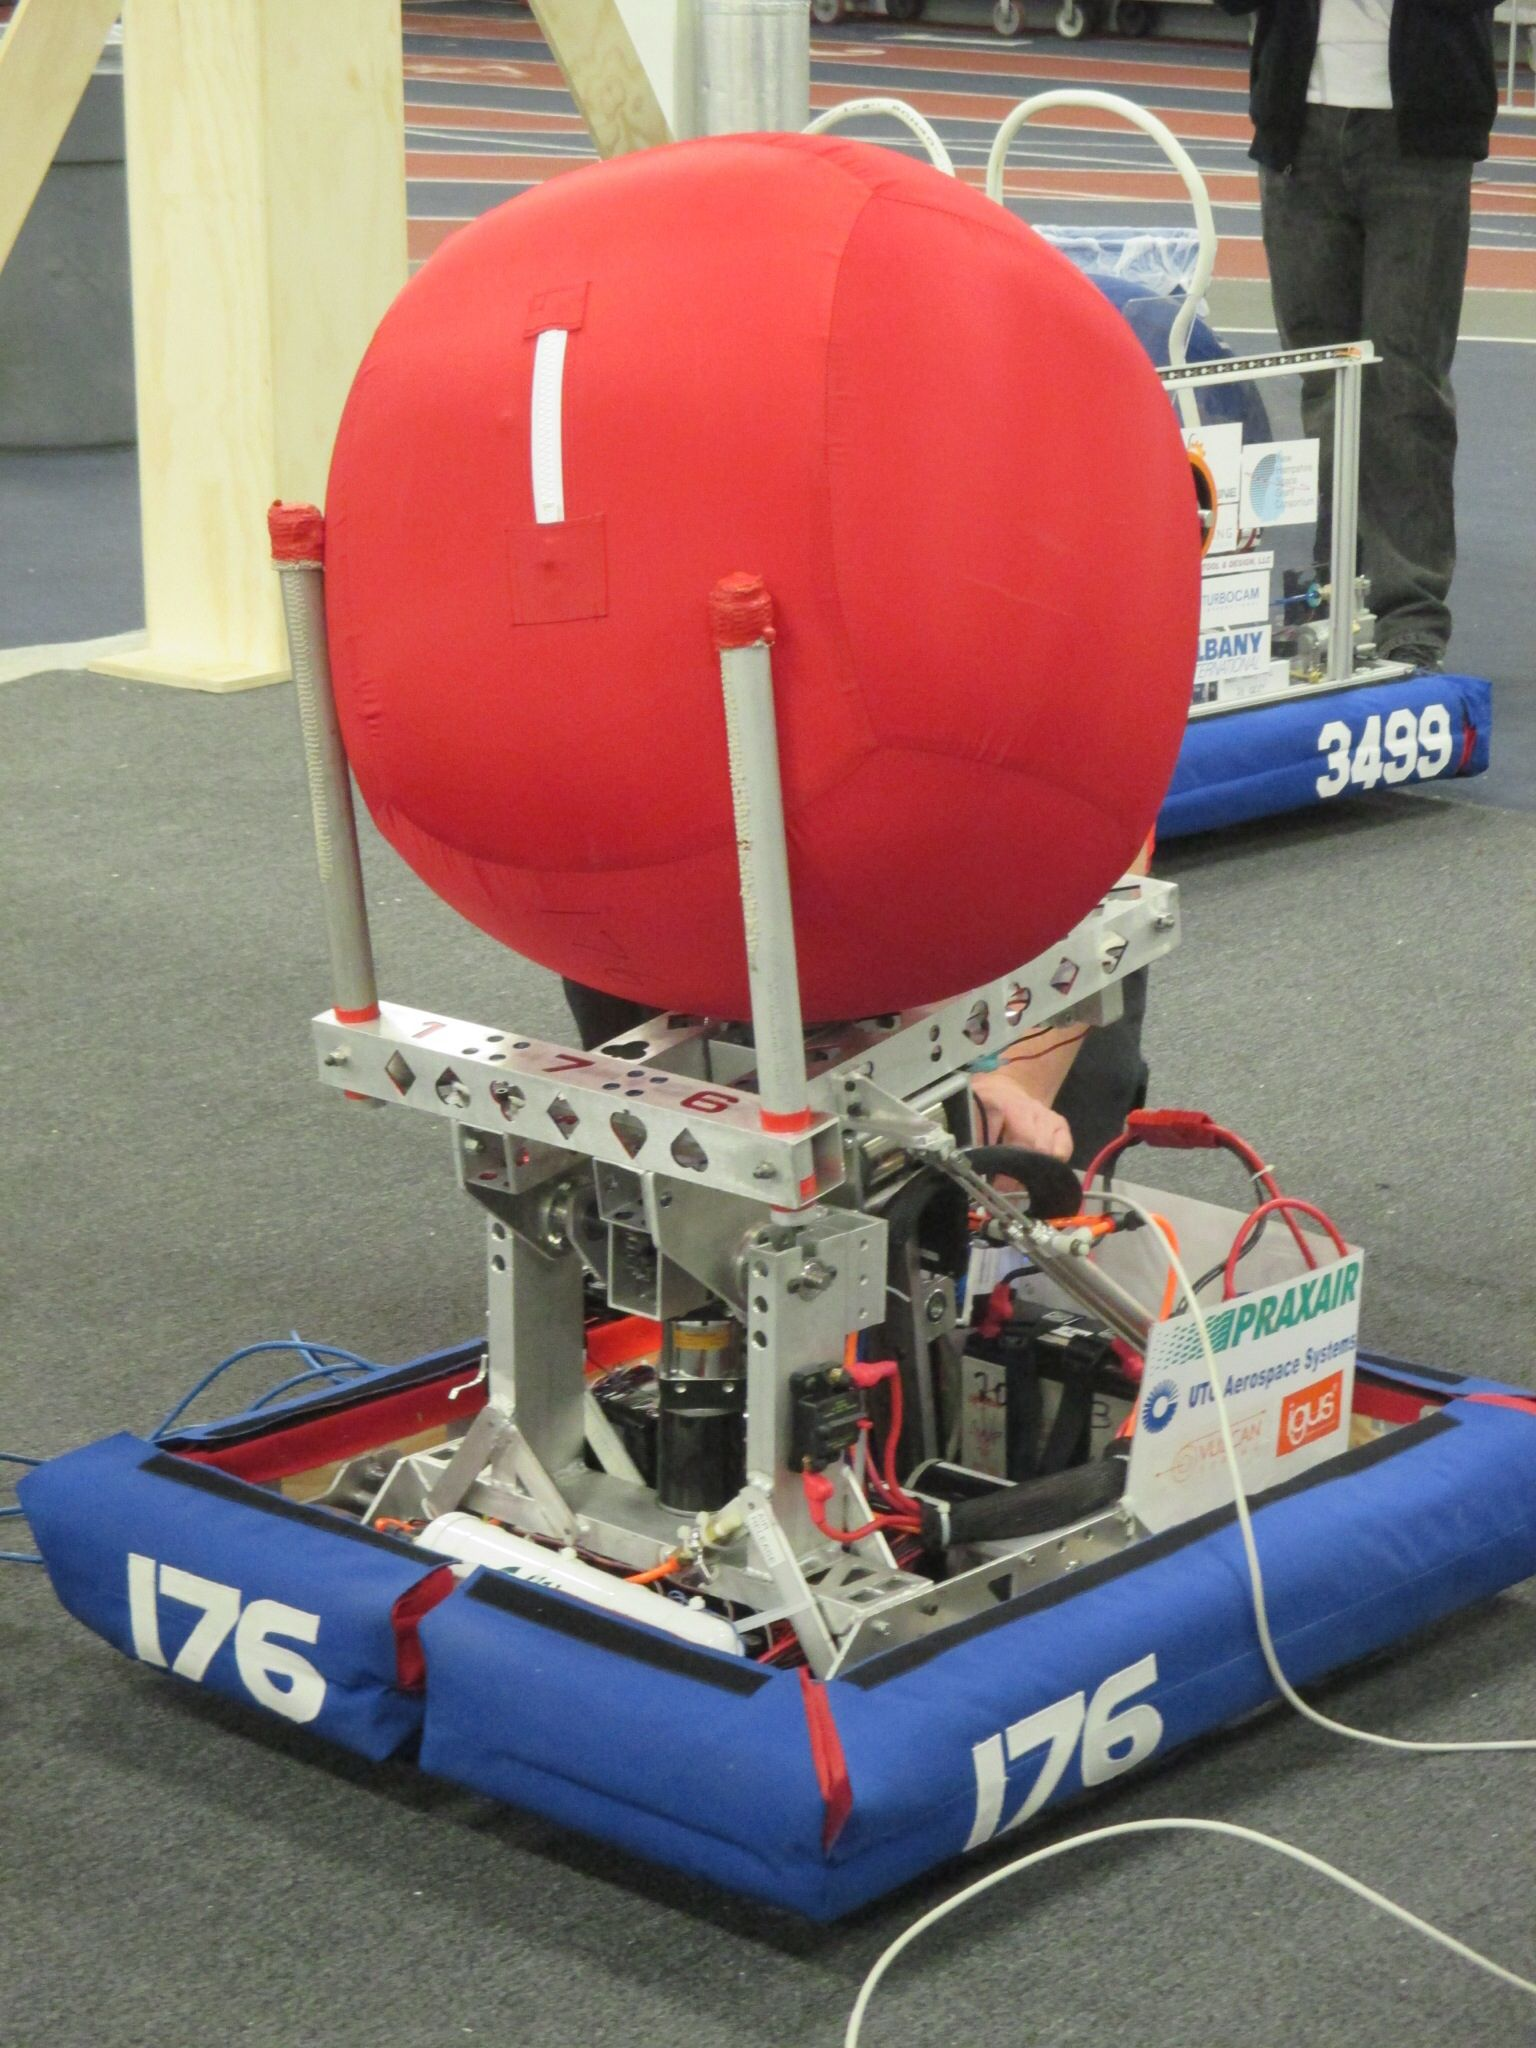 Introducing Ms Stacy. Aces High 176 2014 robot.